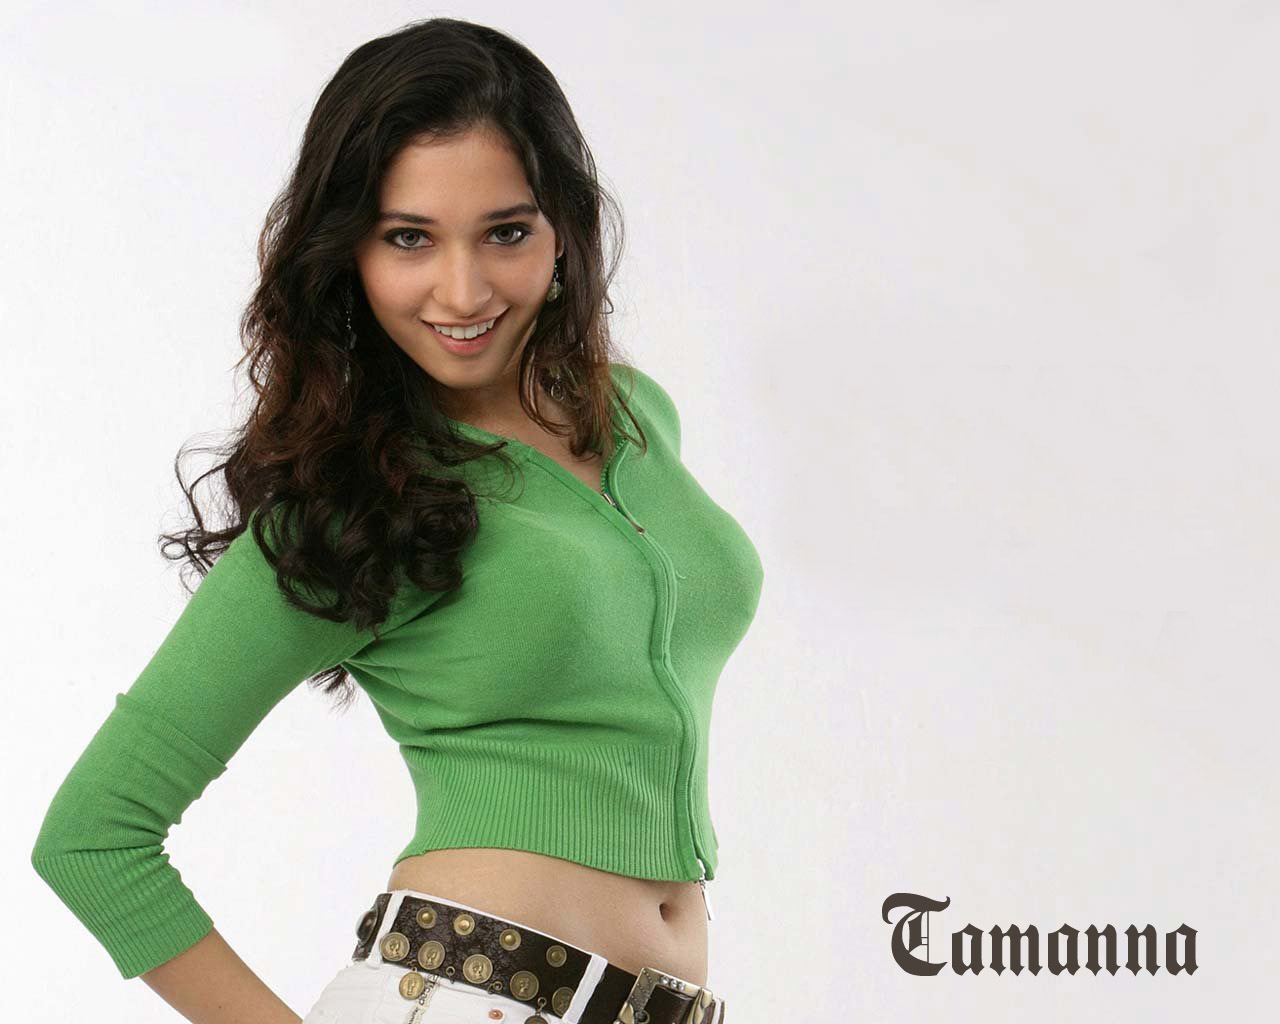 tamanna in green top wallpapers | wallpapers hd